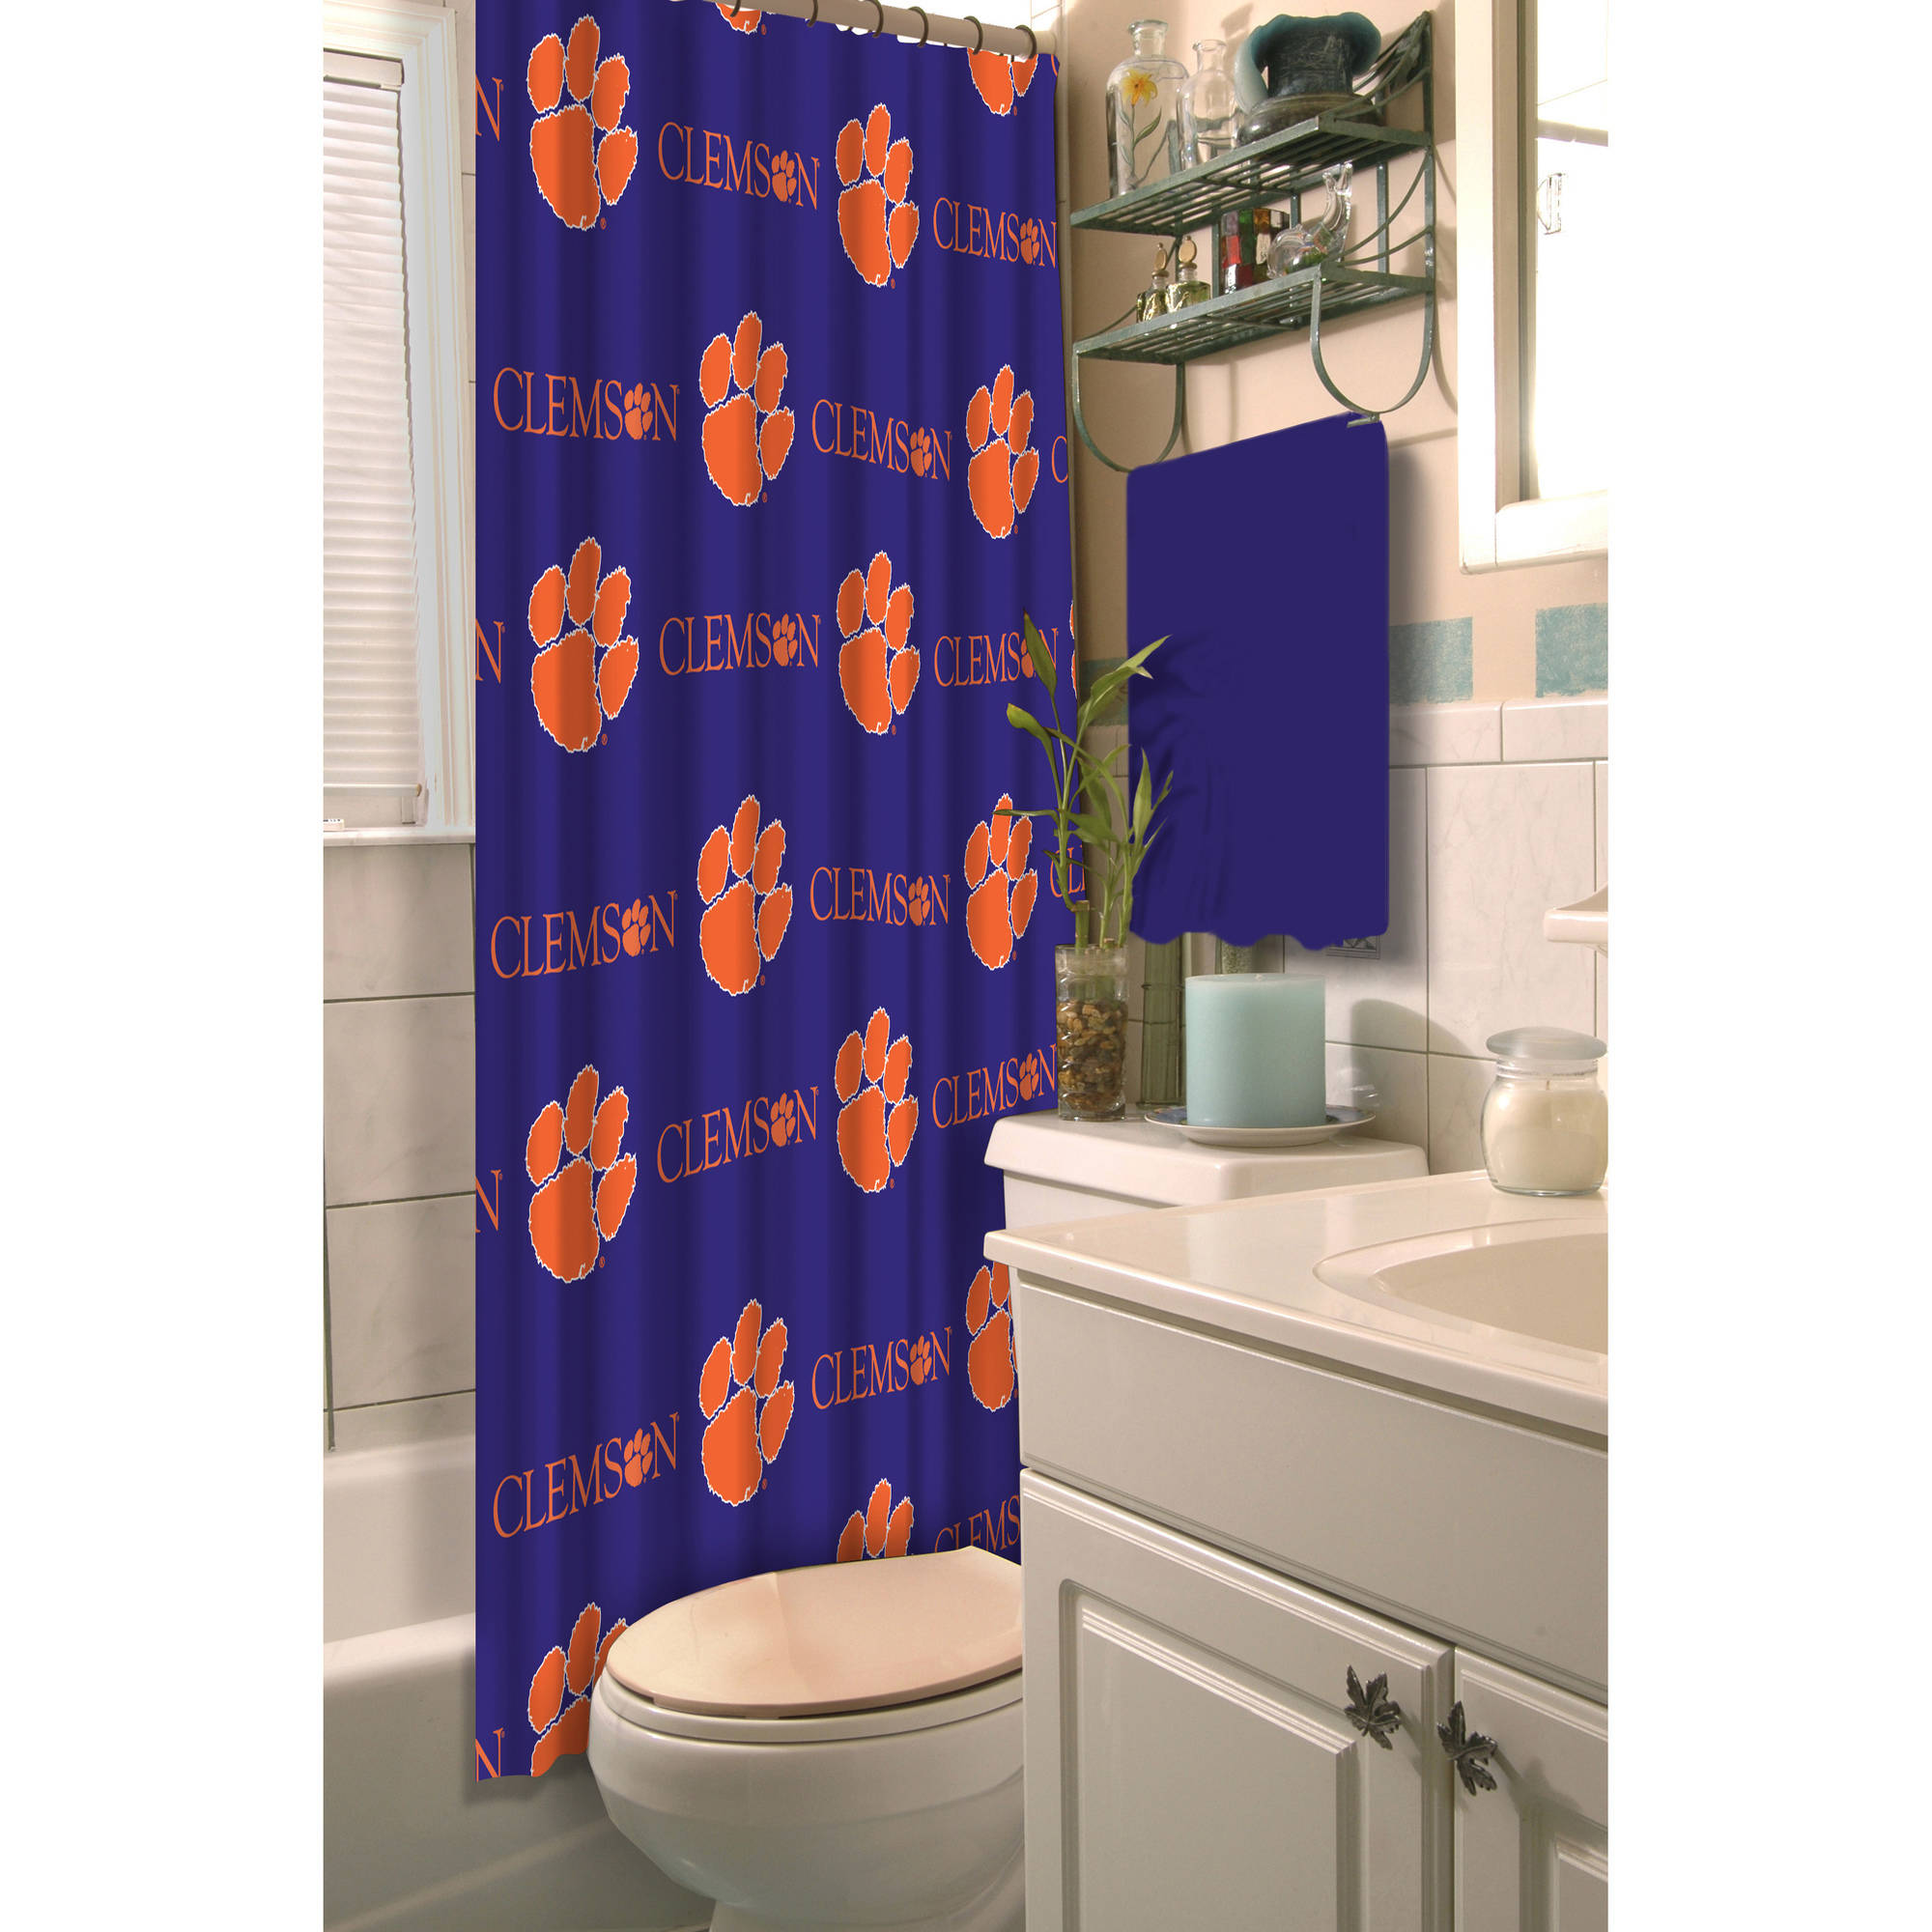 Superior NCAA Clemson University Decorative Bath Collection Shower Curtain